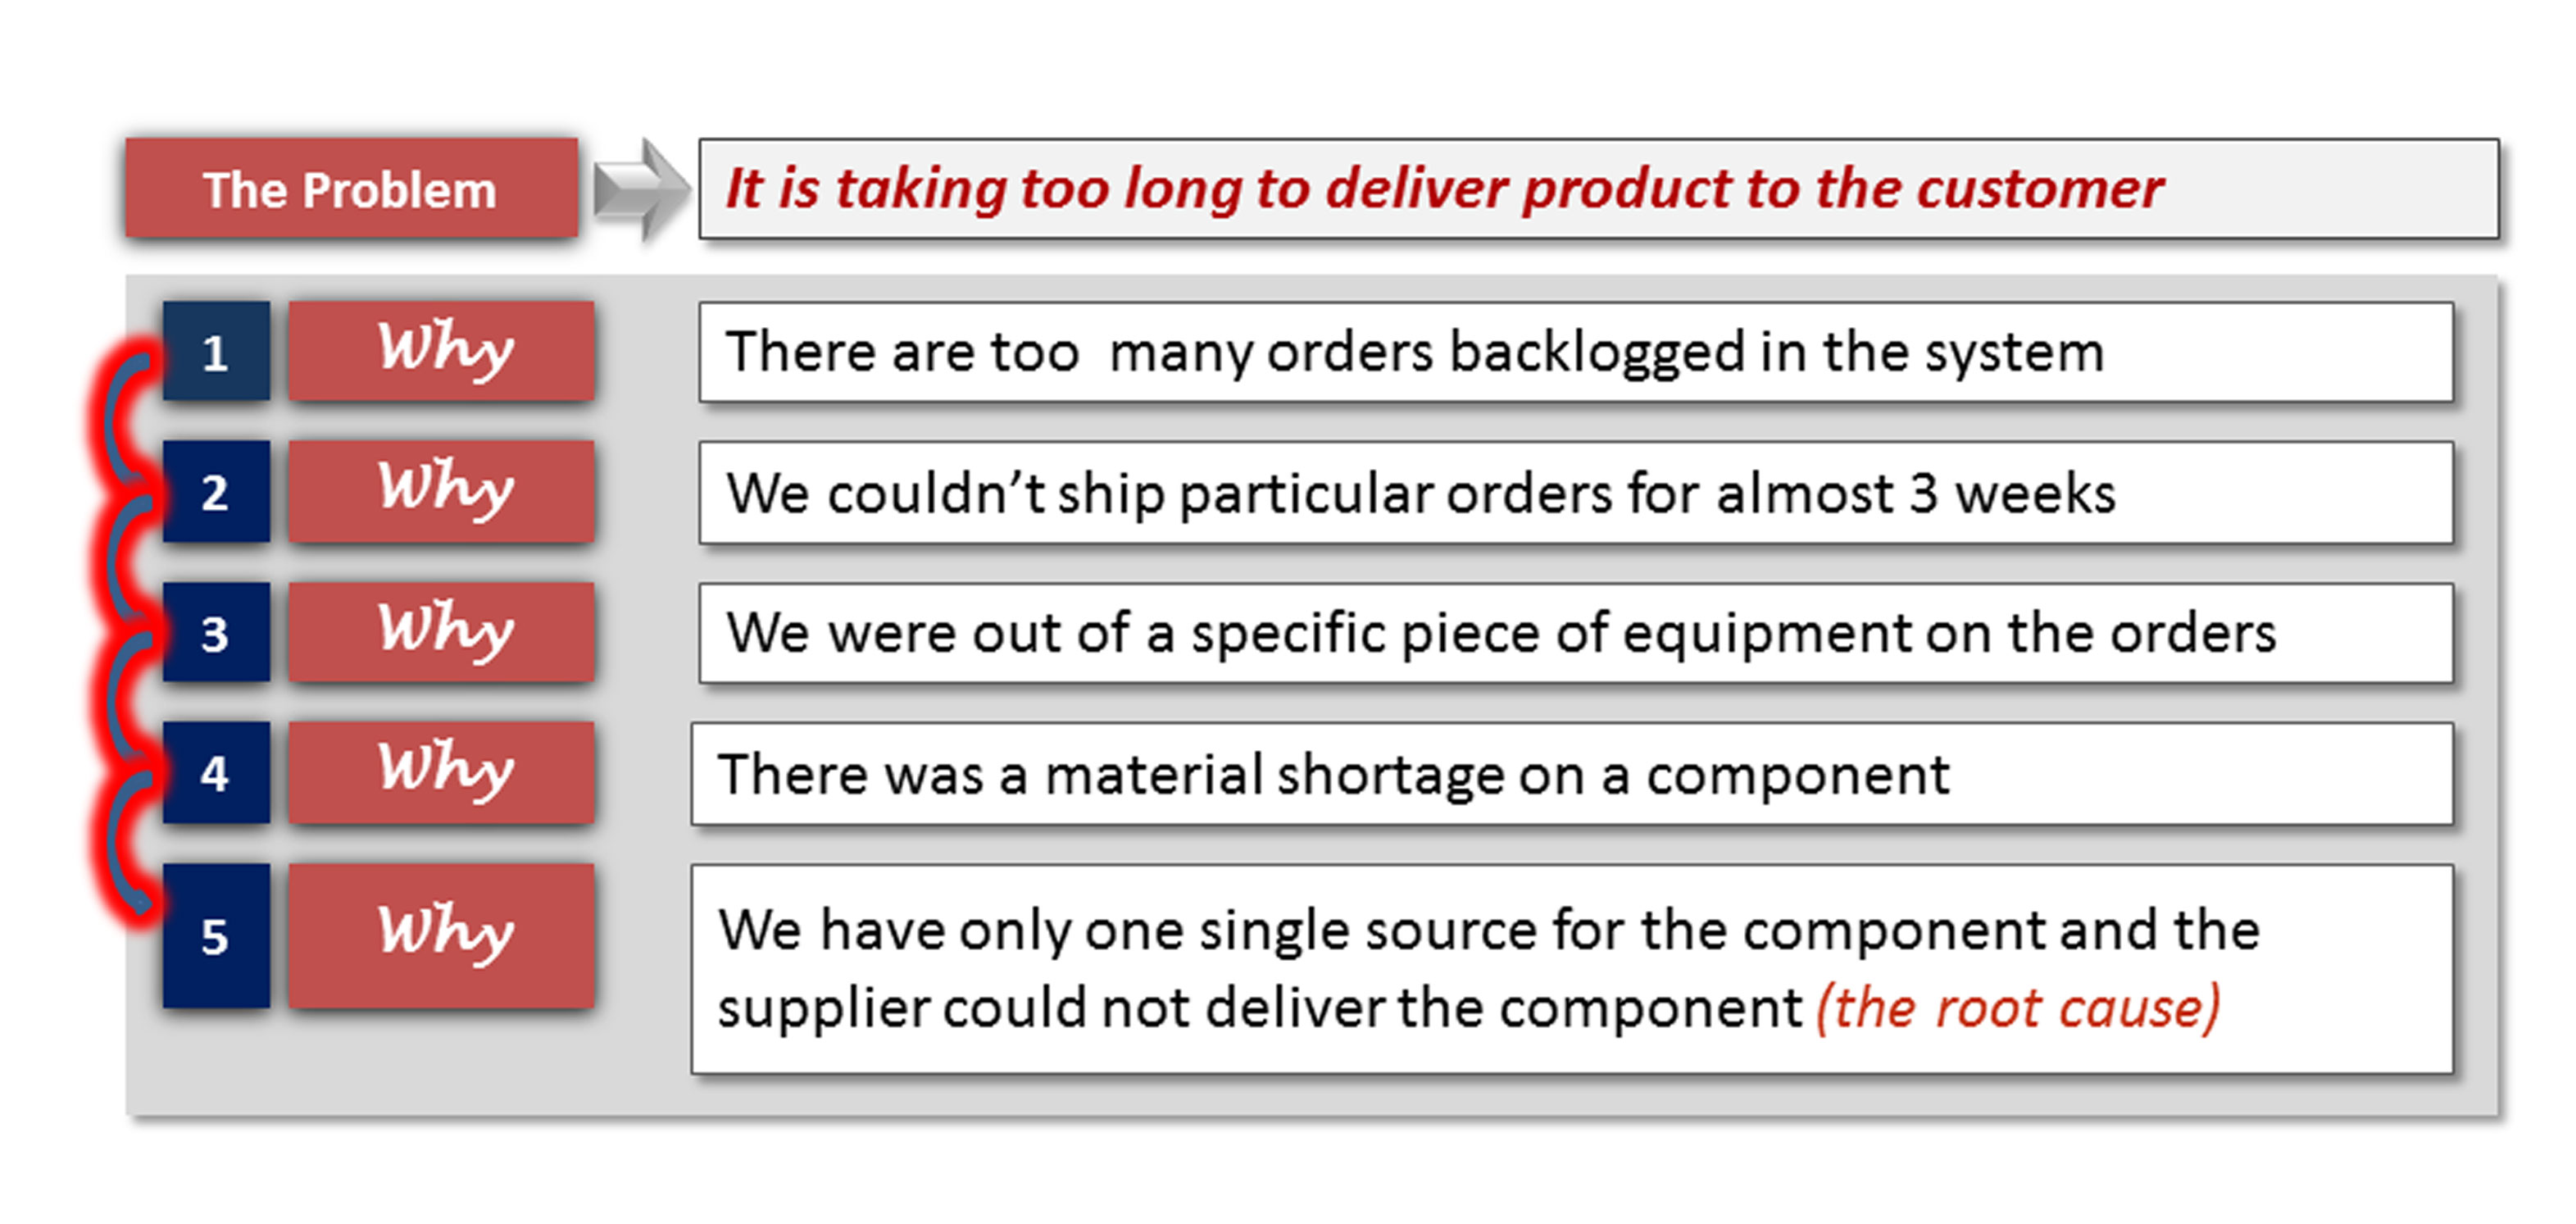 5 Whys Lean Manufacturing for the Automotive Industry